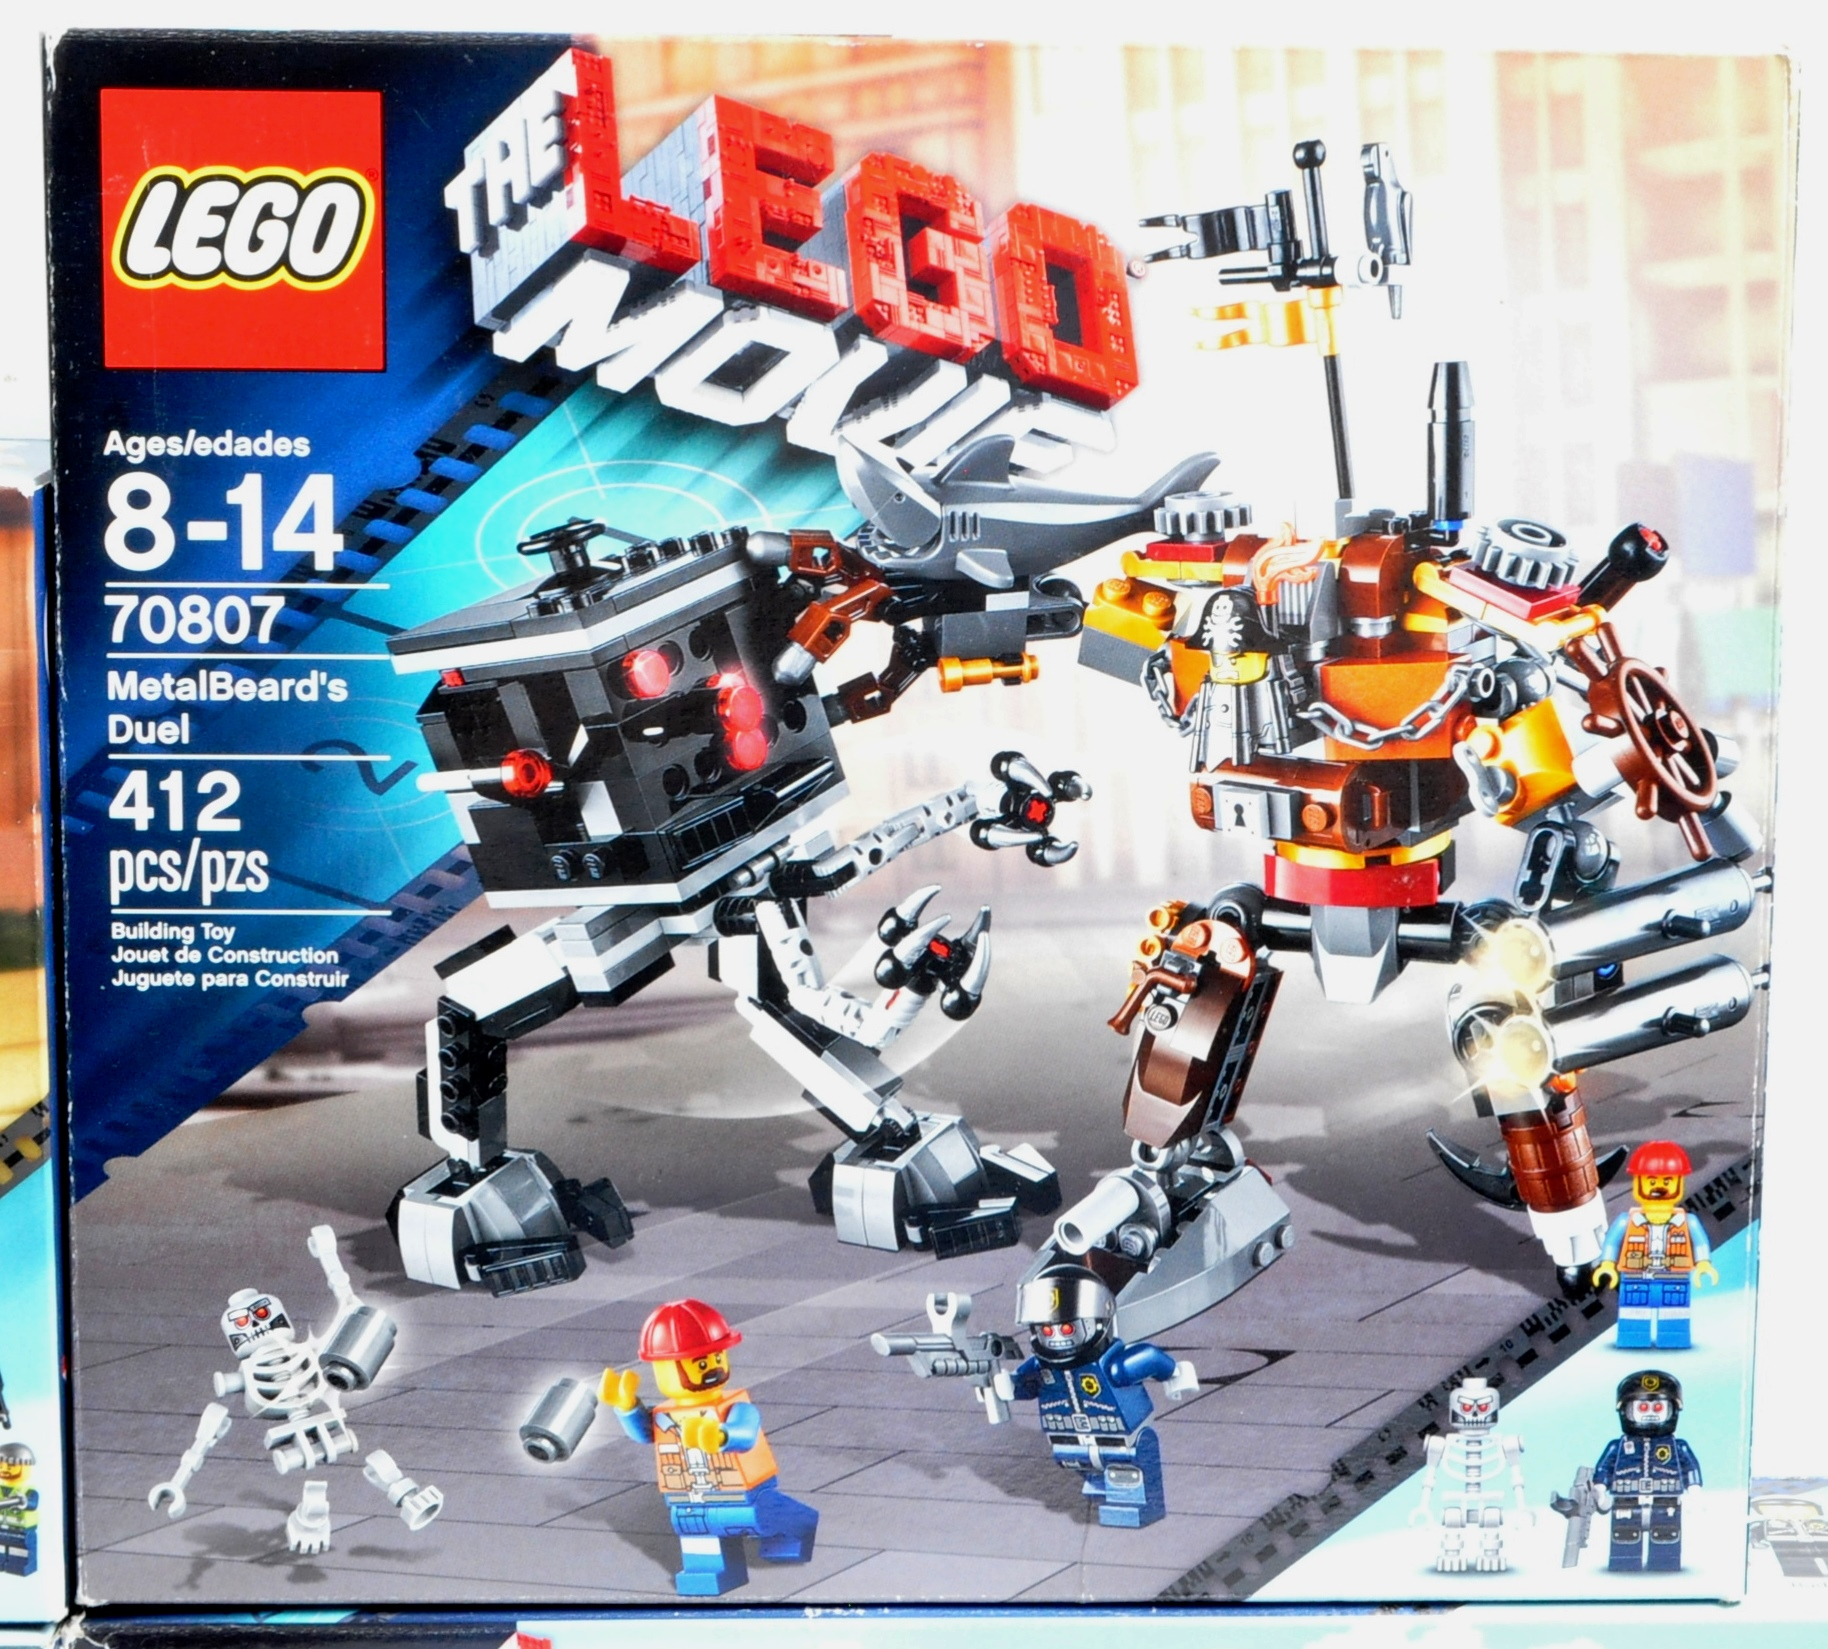 LEGO SETS - THE LEGO MOVIE - COLLECTION OF X7 LEGO MOVIE SETS - Image 5 of 17